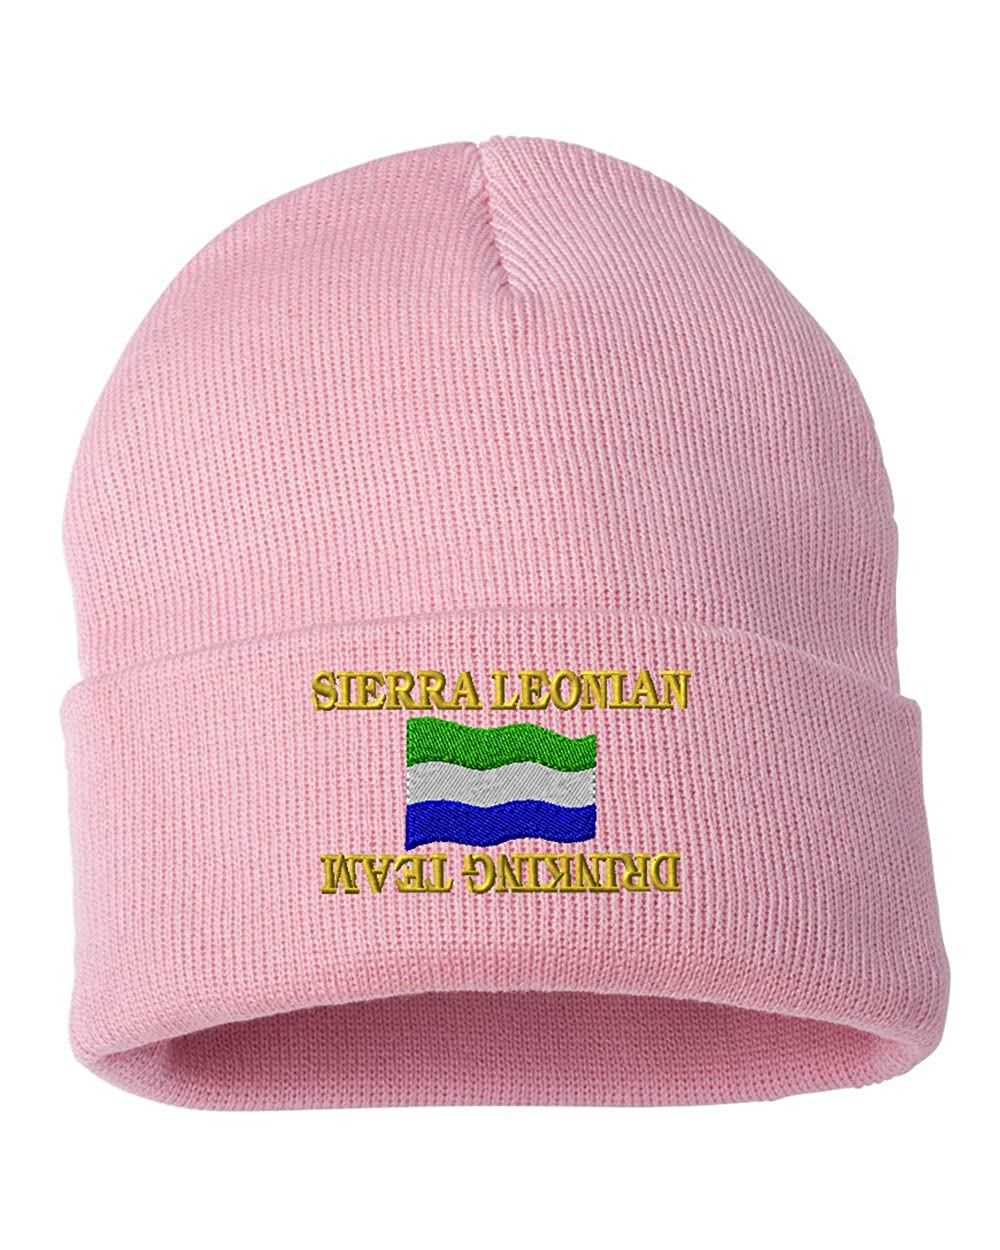 Sierra Leonian drinking team Custom Personalized Embroidery Embroidered Beanie